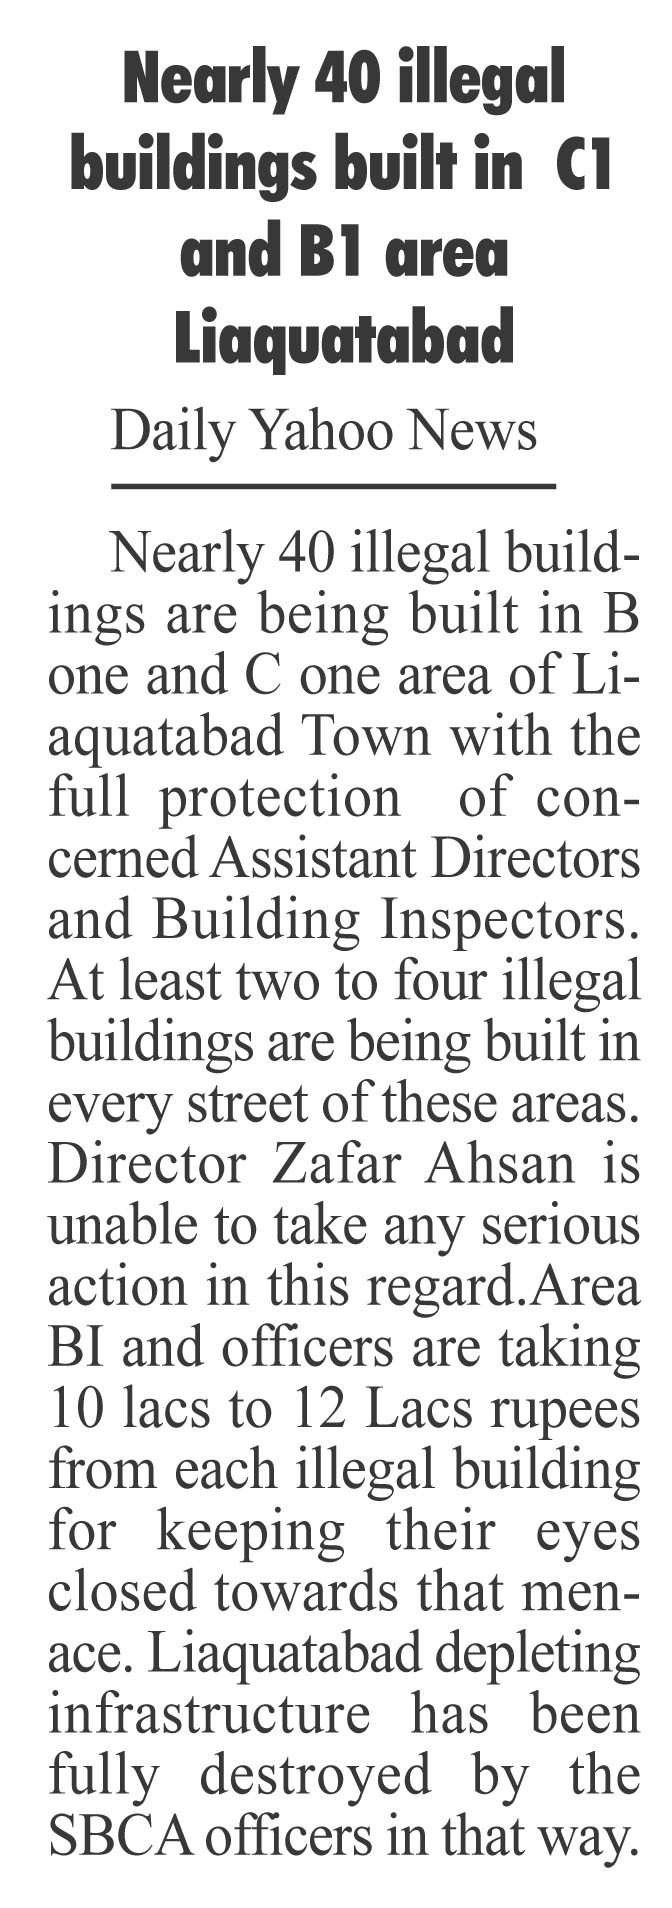 Many dozens illegal building being built in Liaquatabad C1 and B 1 area